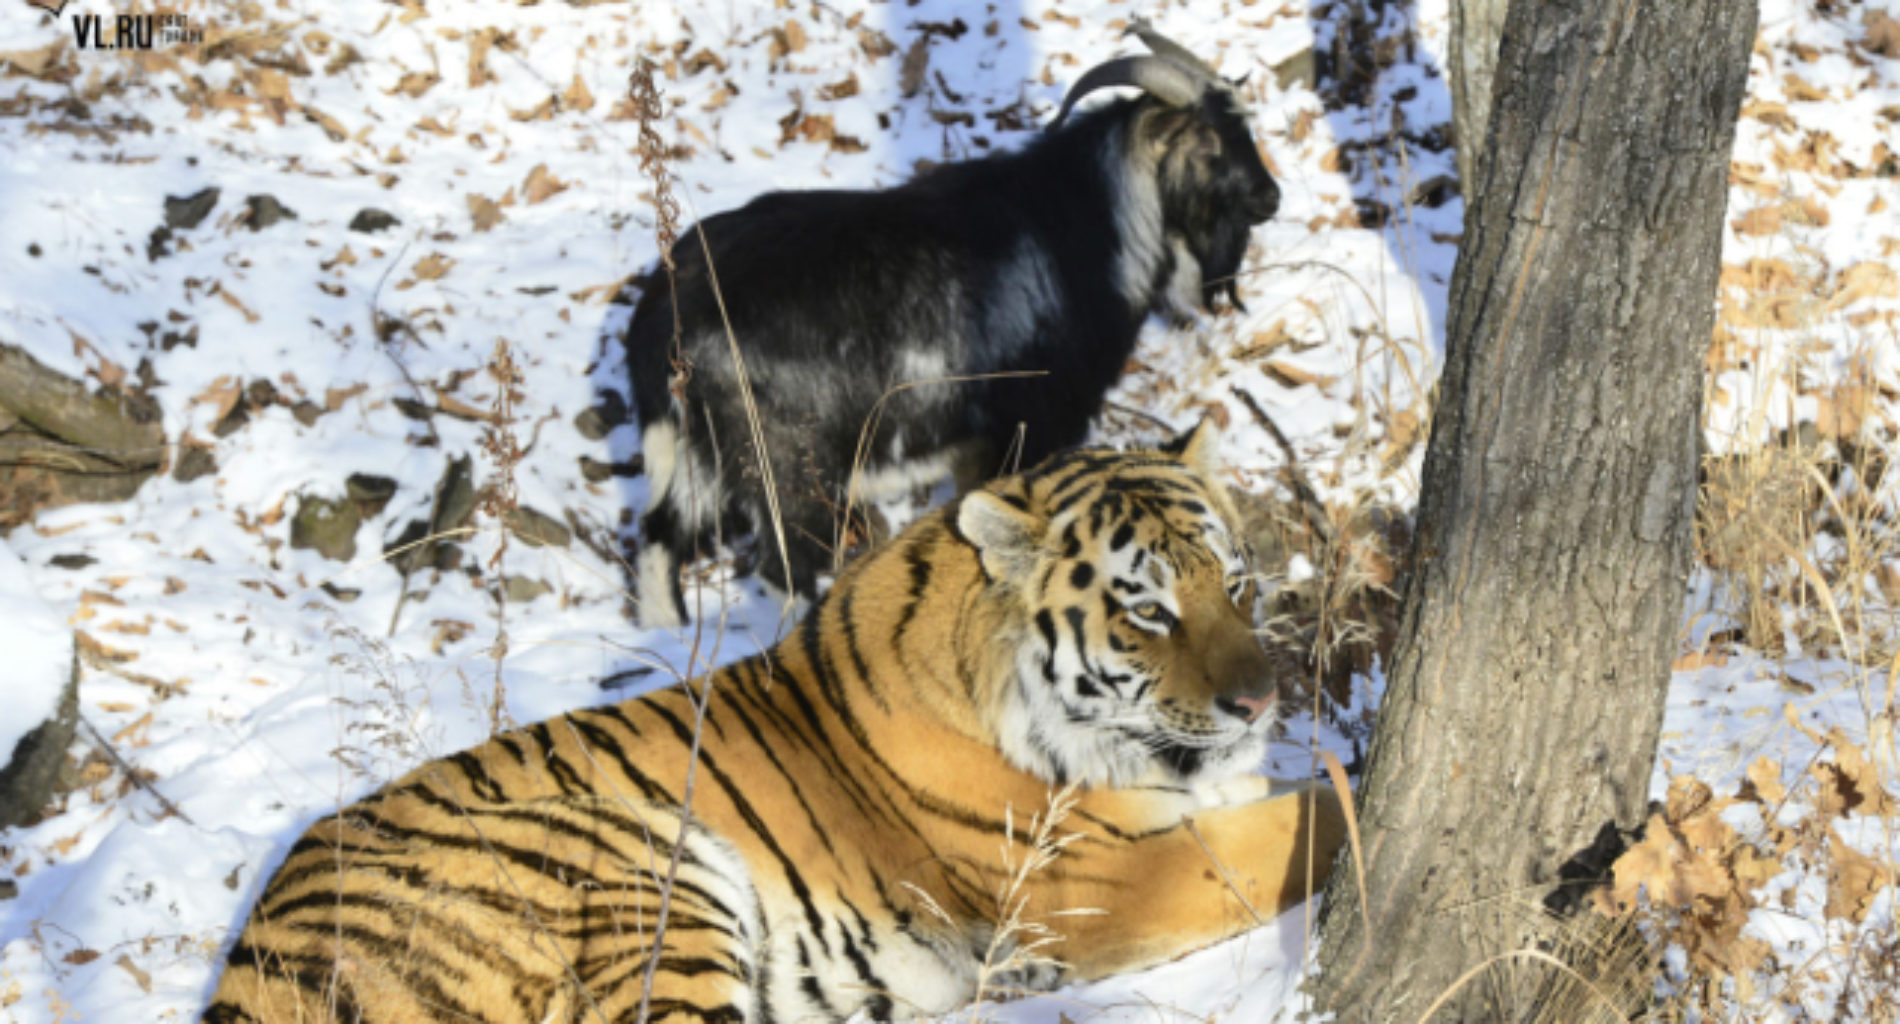 Russian politicians debate if this tiger and goat are 'promoting homosexuality'